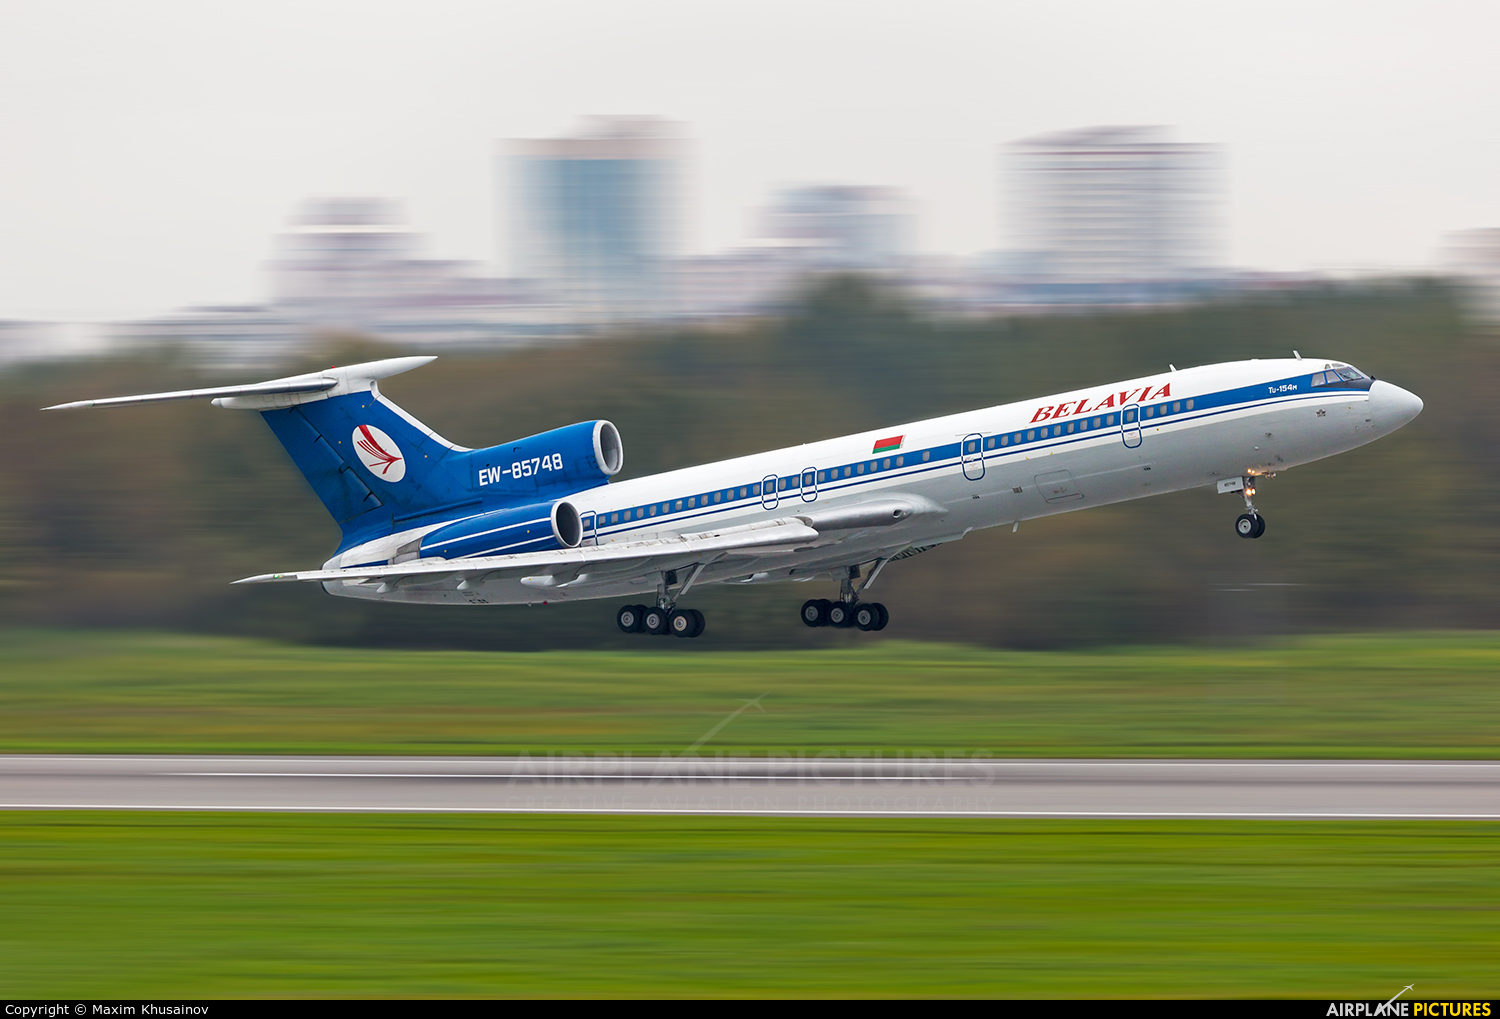 Belavia EW-85748 aircraft at St. Petersburg - Pulkovo